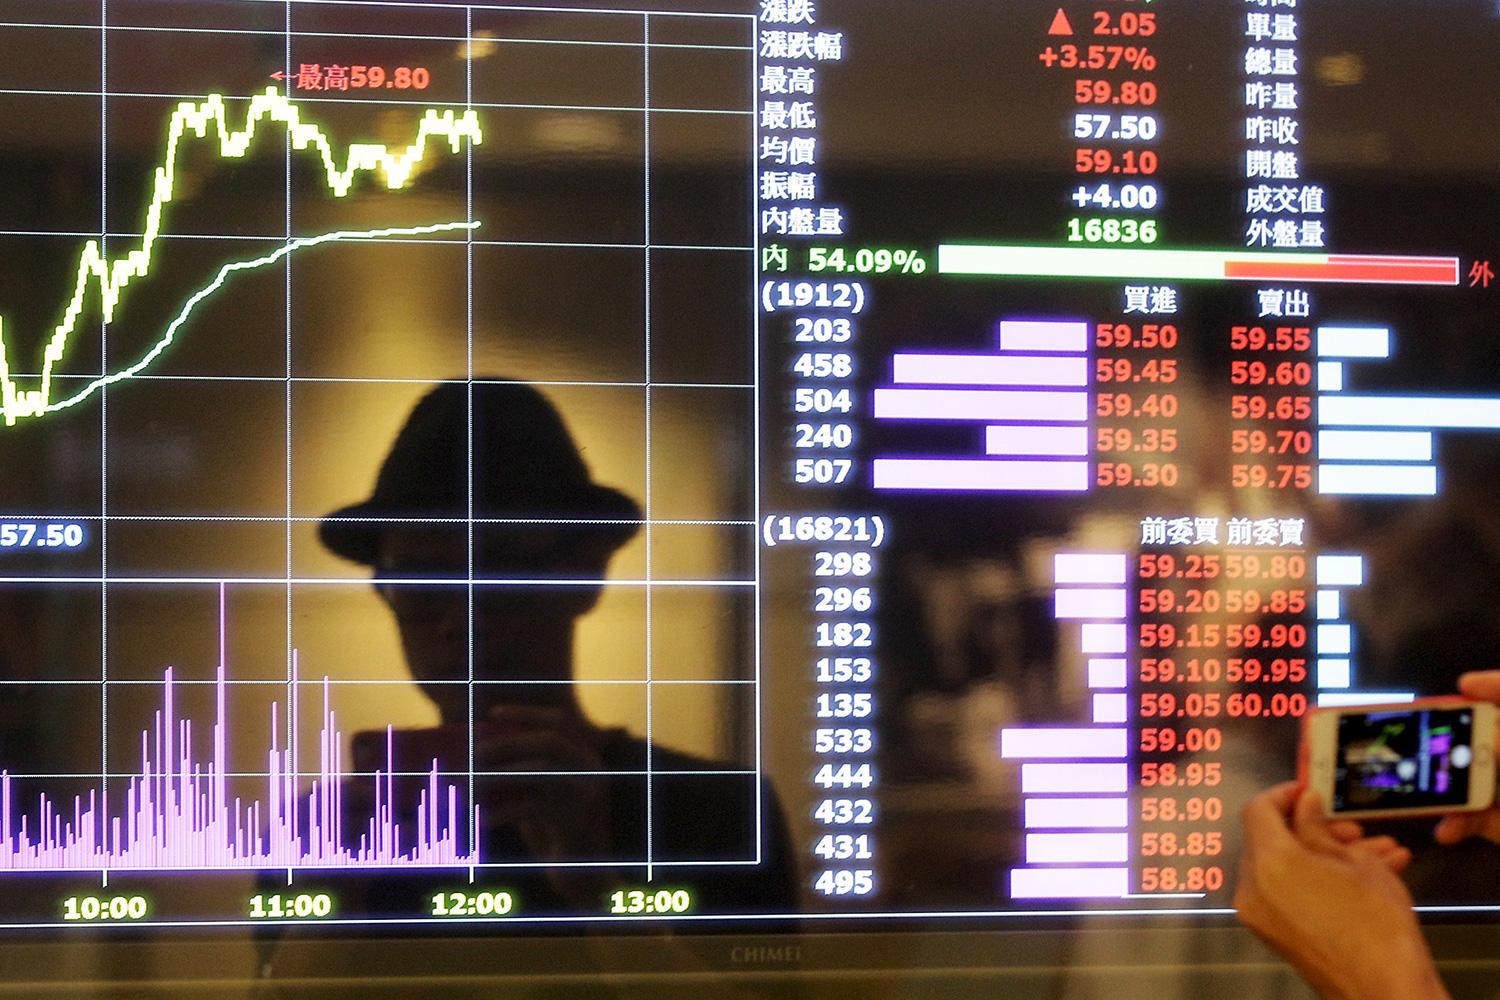 This is a stunning image showing a man wearing a hat sihouetted against a stock ticker screen.